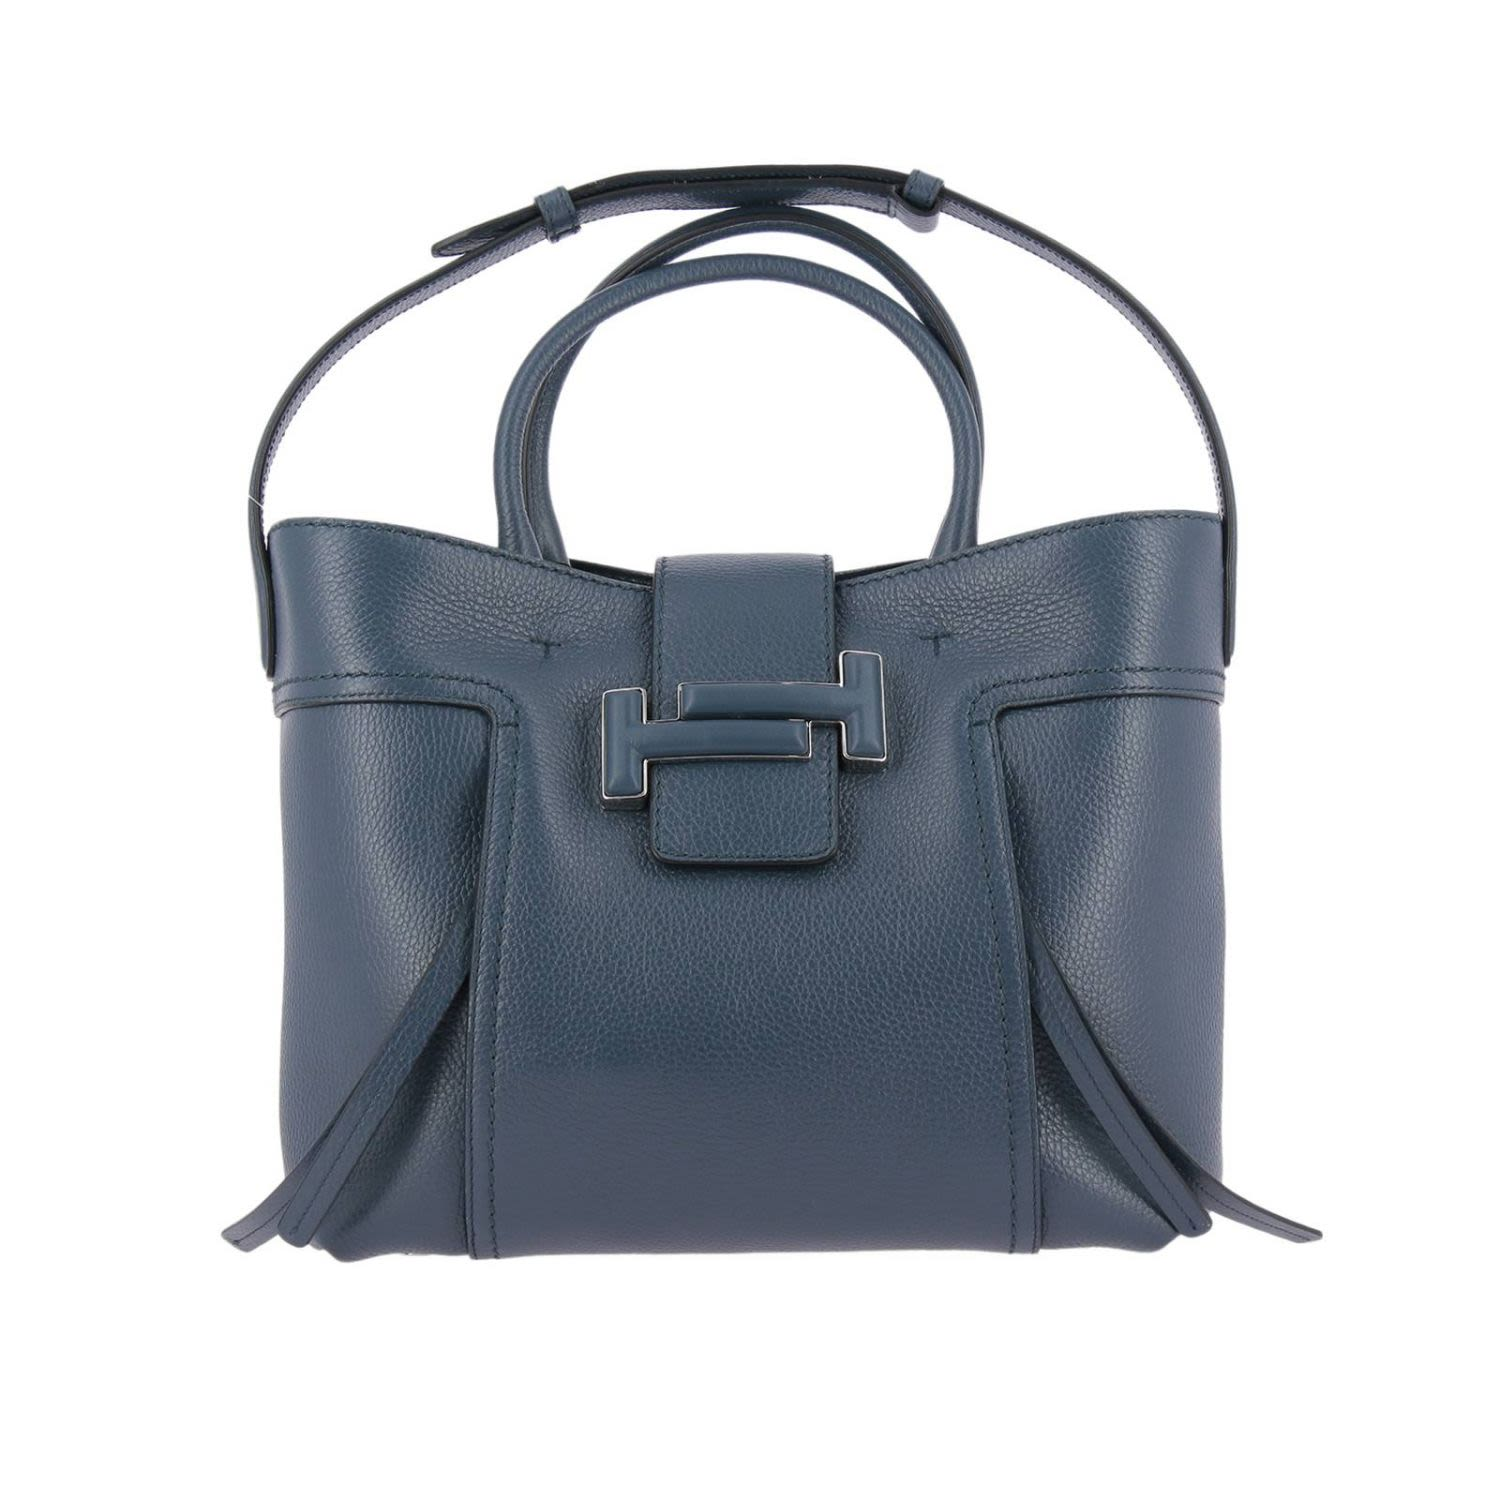 Handbag Shoulder Bag Women Tod's